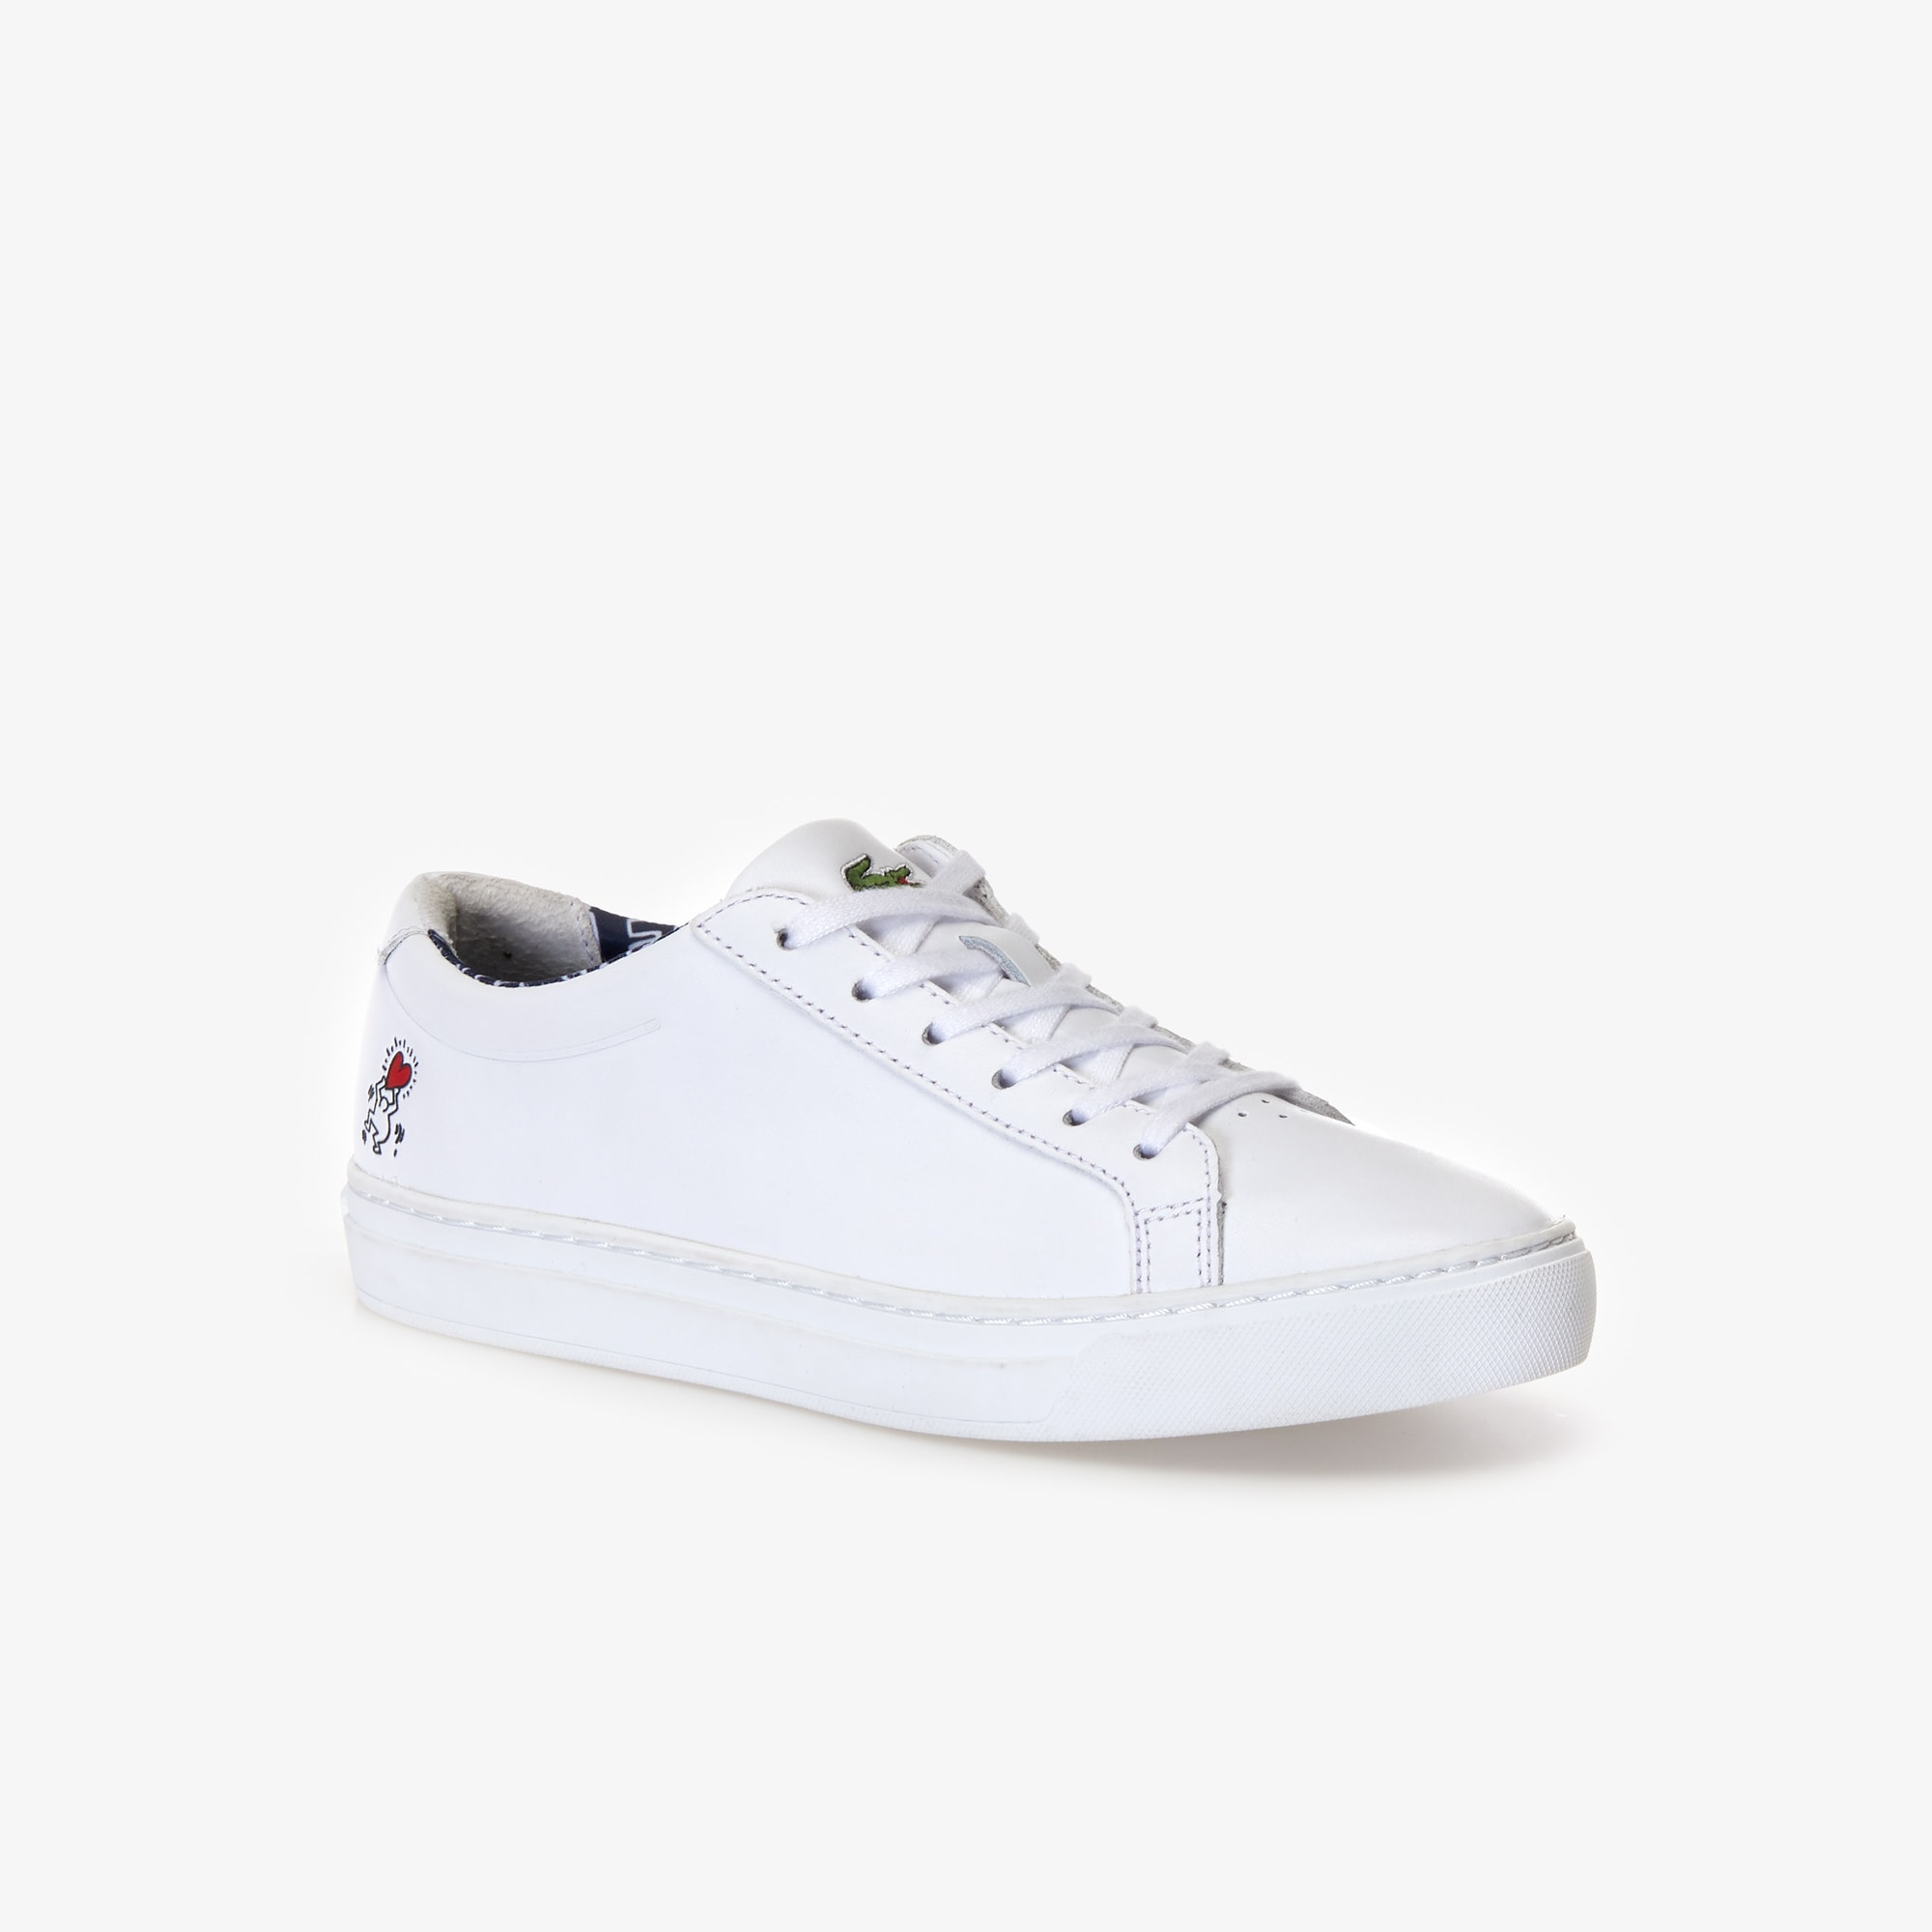 bb16fc97f7a70 Women s L.12.12 Keith Haring Leather Sneakers